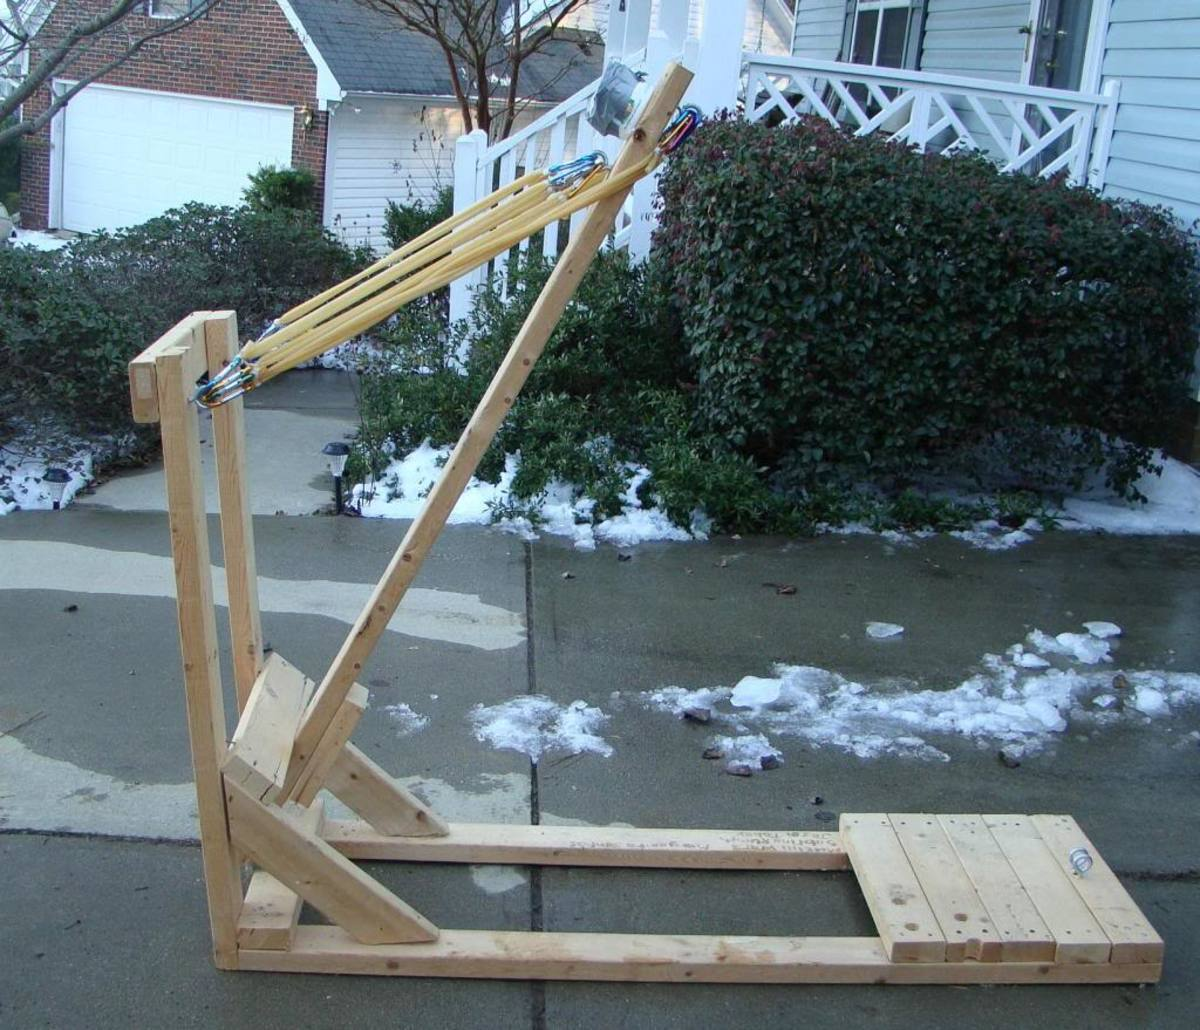 how to make a small homemade catapult